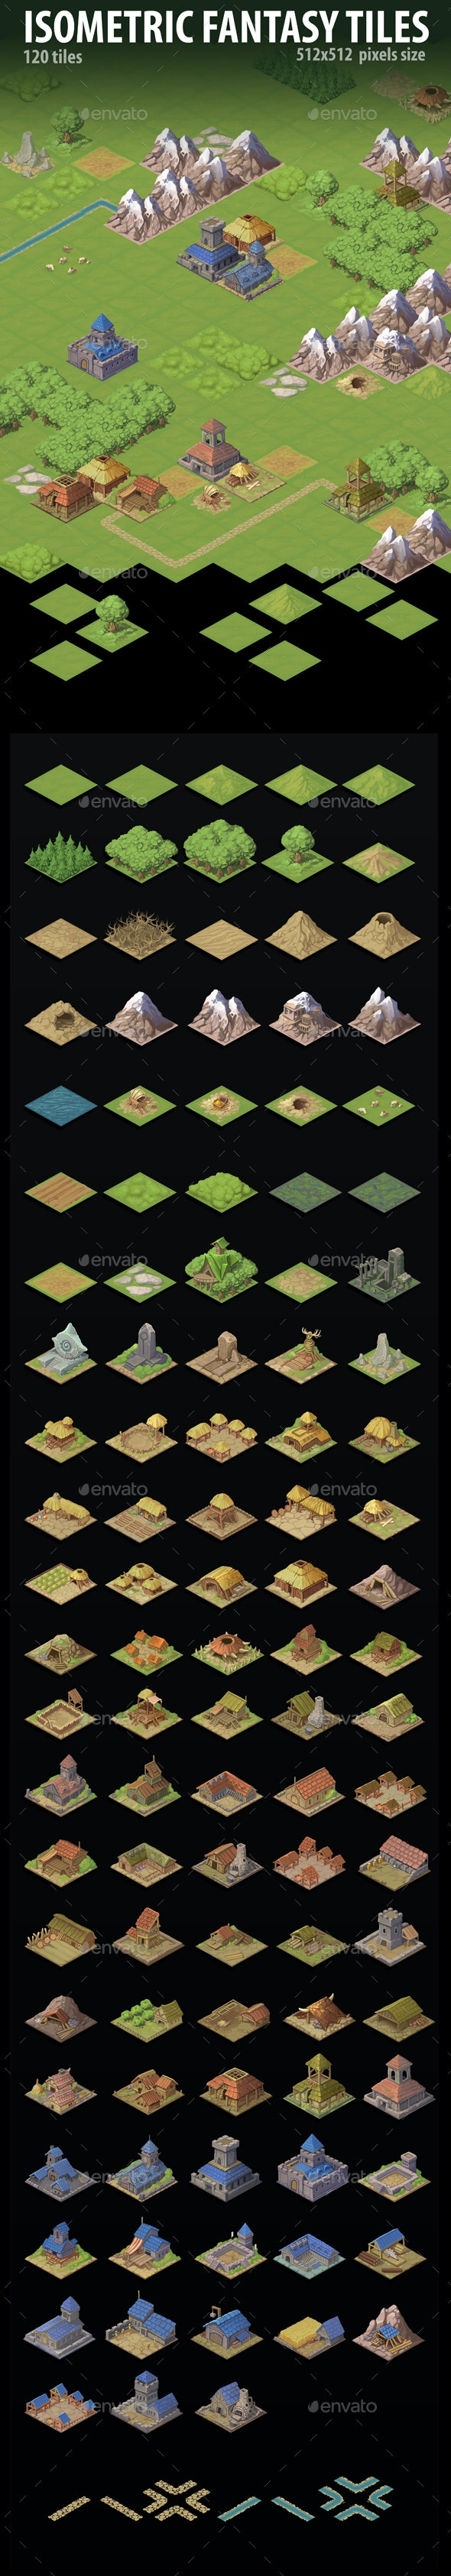 Isometric Fantasy Tiles - Tilesets Game Assets